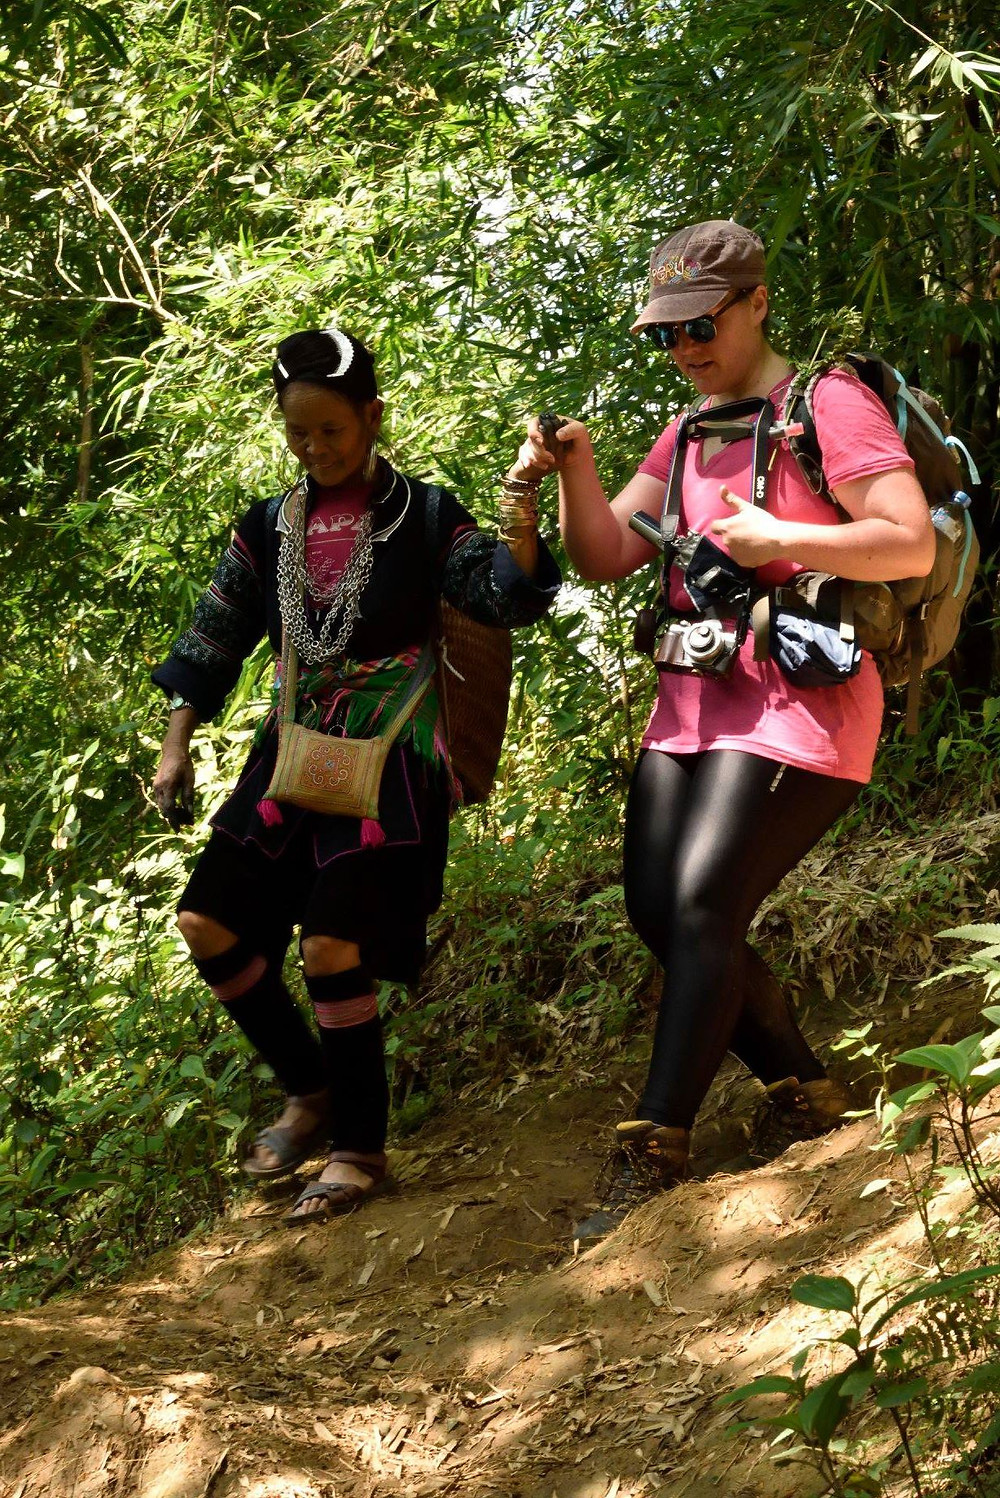 Trekking the hills of Sapa, Vietnam with the assistance of a H'mong woman and Sapa Sisters, Life Itinerant